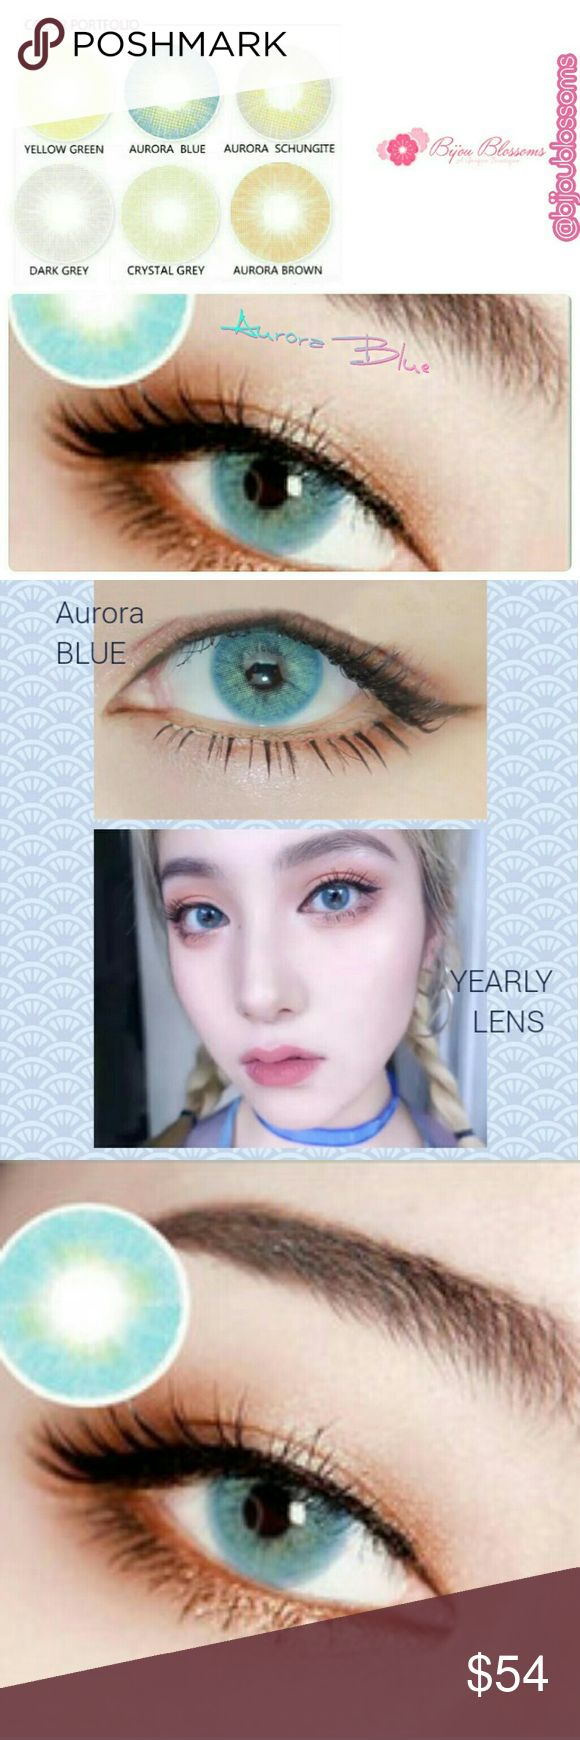 Aurora Blue Hidrocor Yearly Color Contact Lenses Beautiful Aurora Series Hidrocor Three Tone Color Contact Lens. This listing is for one pair of plano -0.00 (no prescription) yearly disposable color contacts lens in the color Aurora Blue.   Details are as follows:  Expiration date: 12.2021 Base curve:8.5mm Diameter:14.2mm Center thickness: 0.08mm Water content: 40% Main material: HEMA Lenses hardness: Soft Life span: One year  Please Note: 1.Brand new, high quality with fast shipping! 2.All…